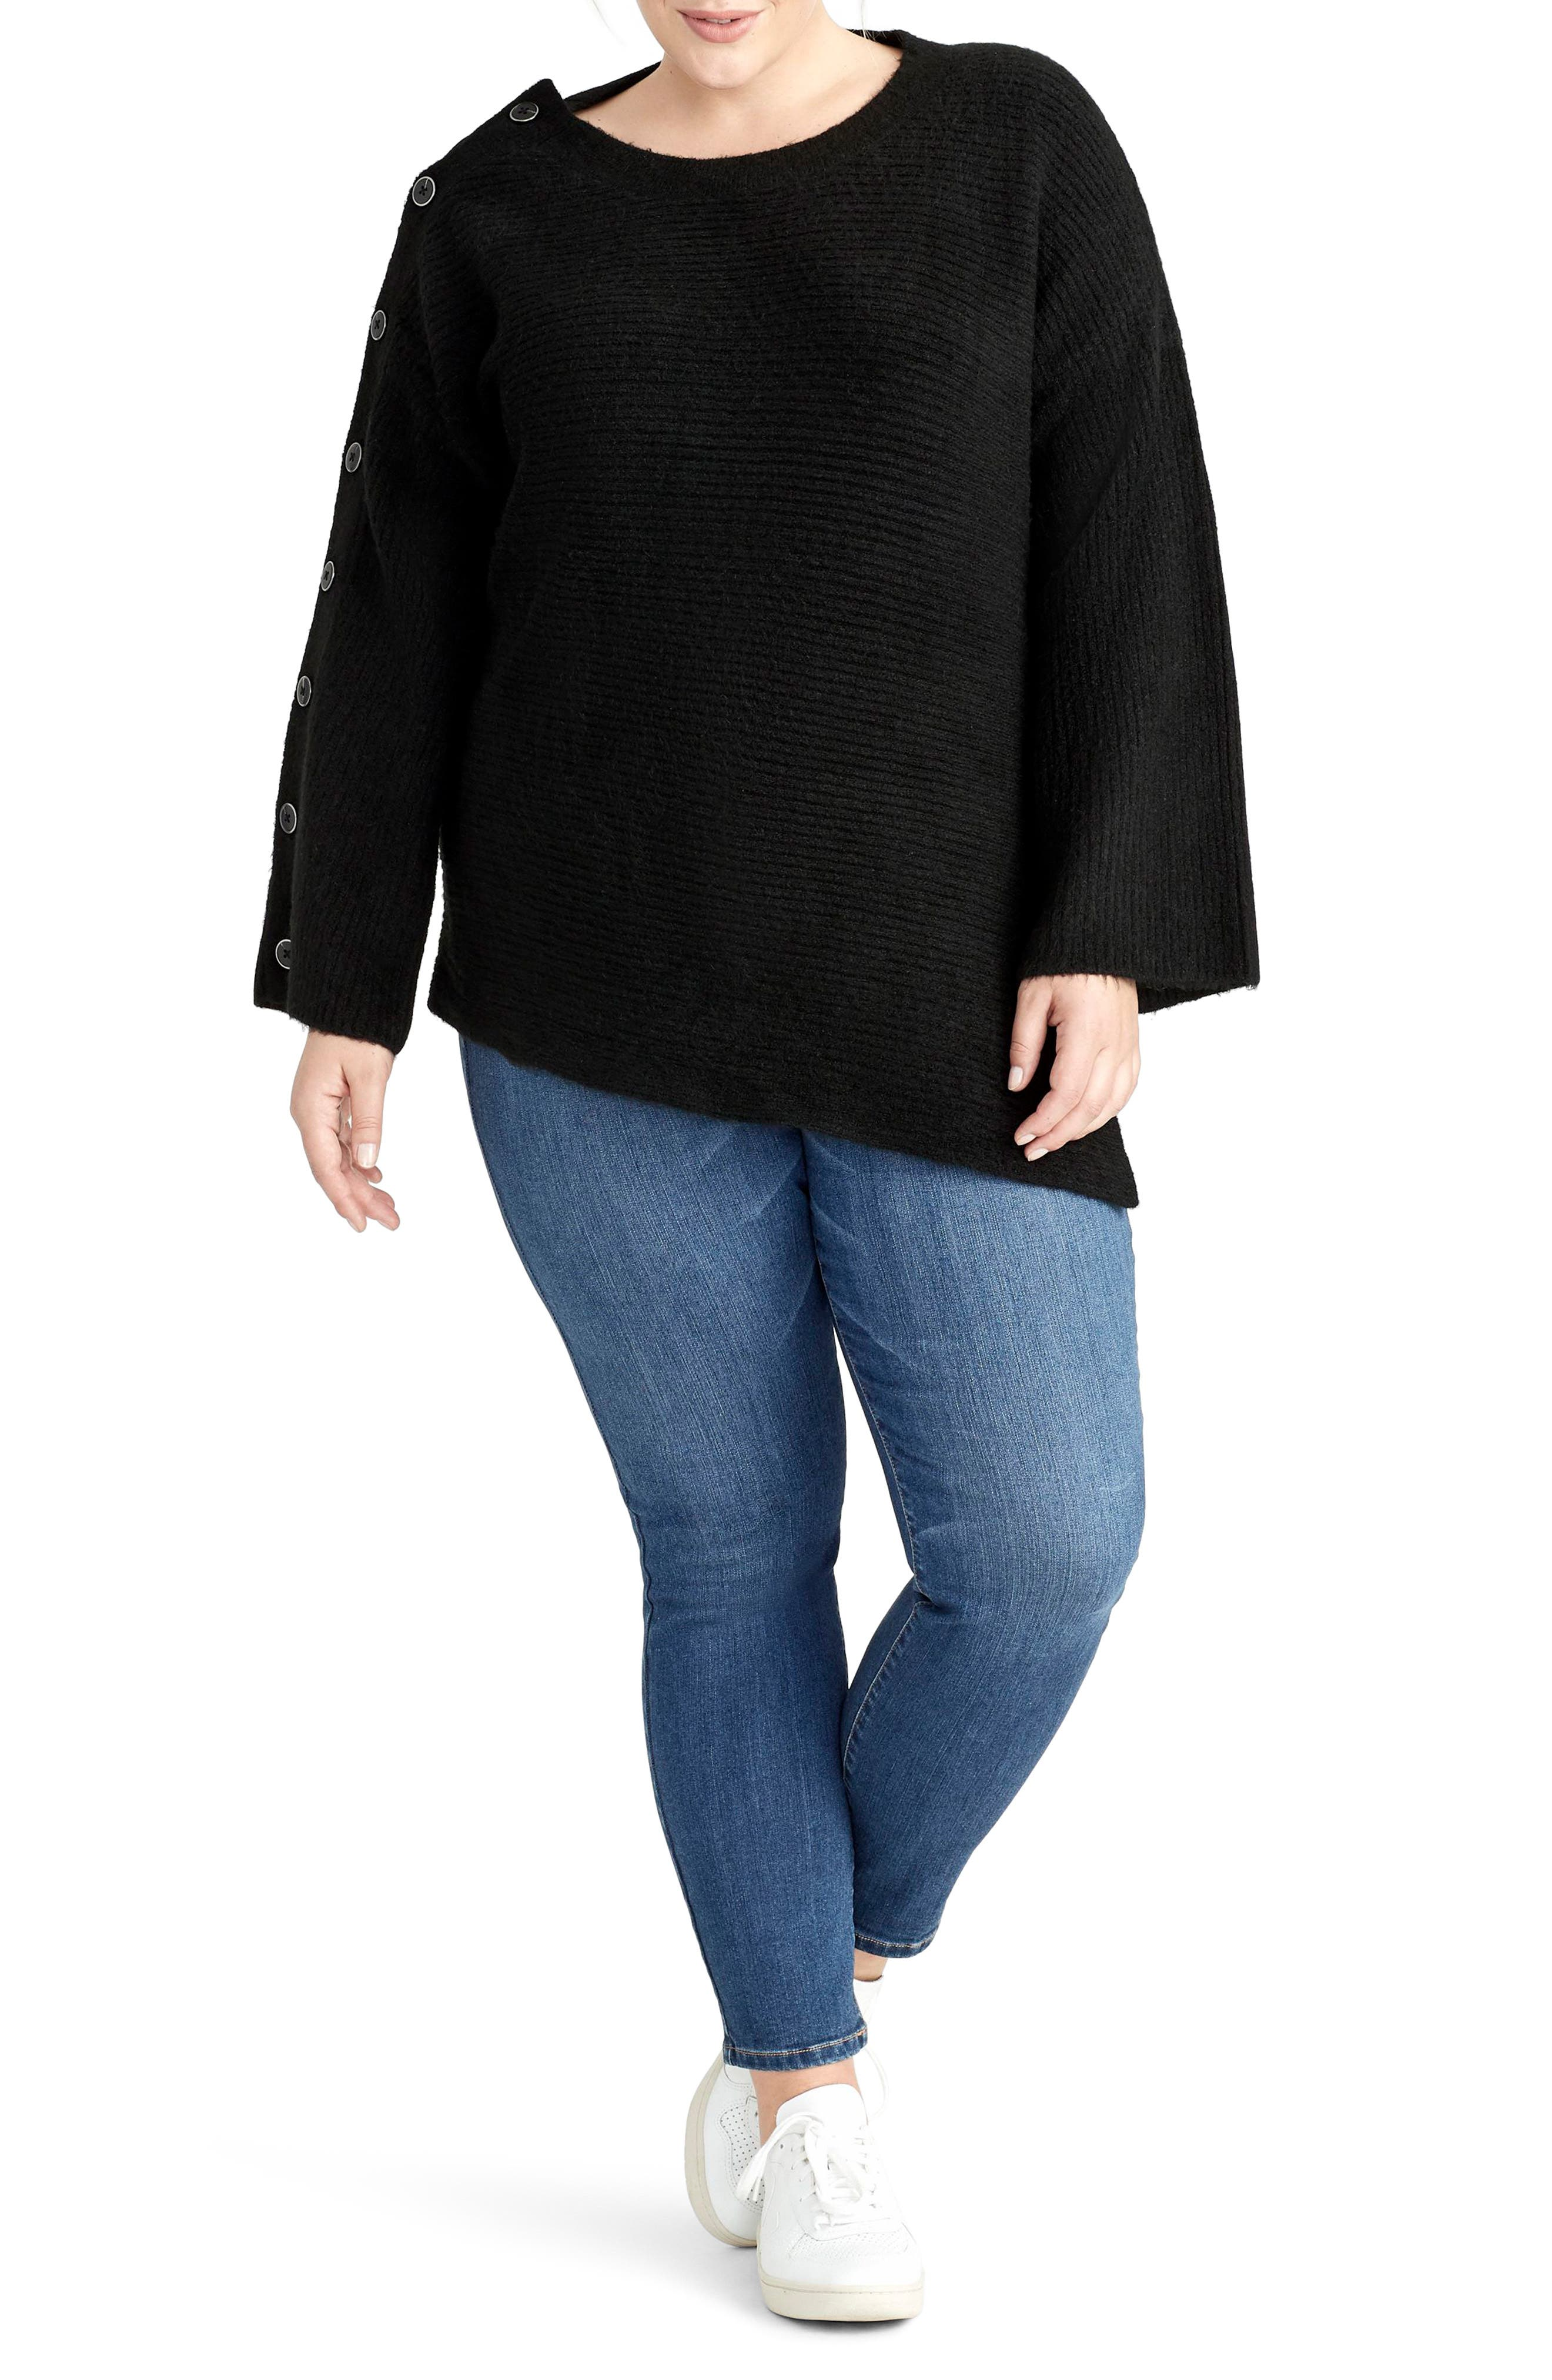 Adley Button Sleeve Sweater,                             Main thumbnail 1, color,                             BLACK